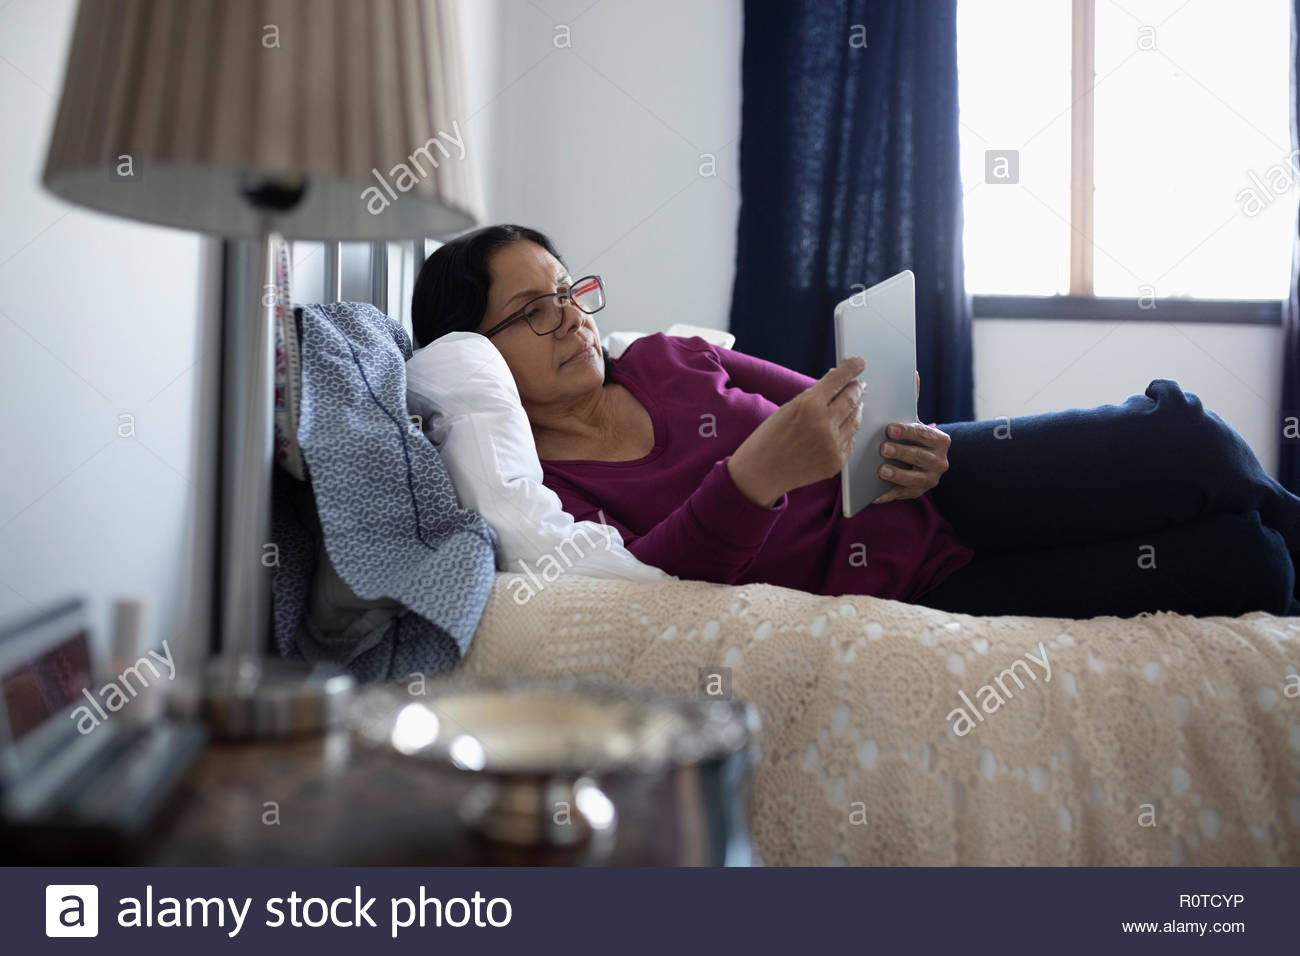 Latinx senior woman relaxing, Sitting on bed Photo Stock